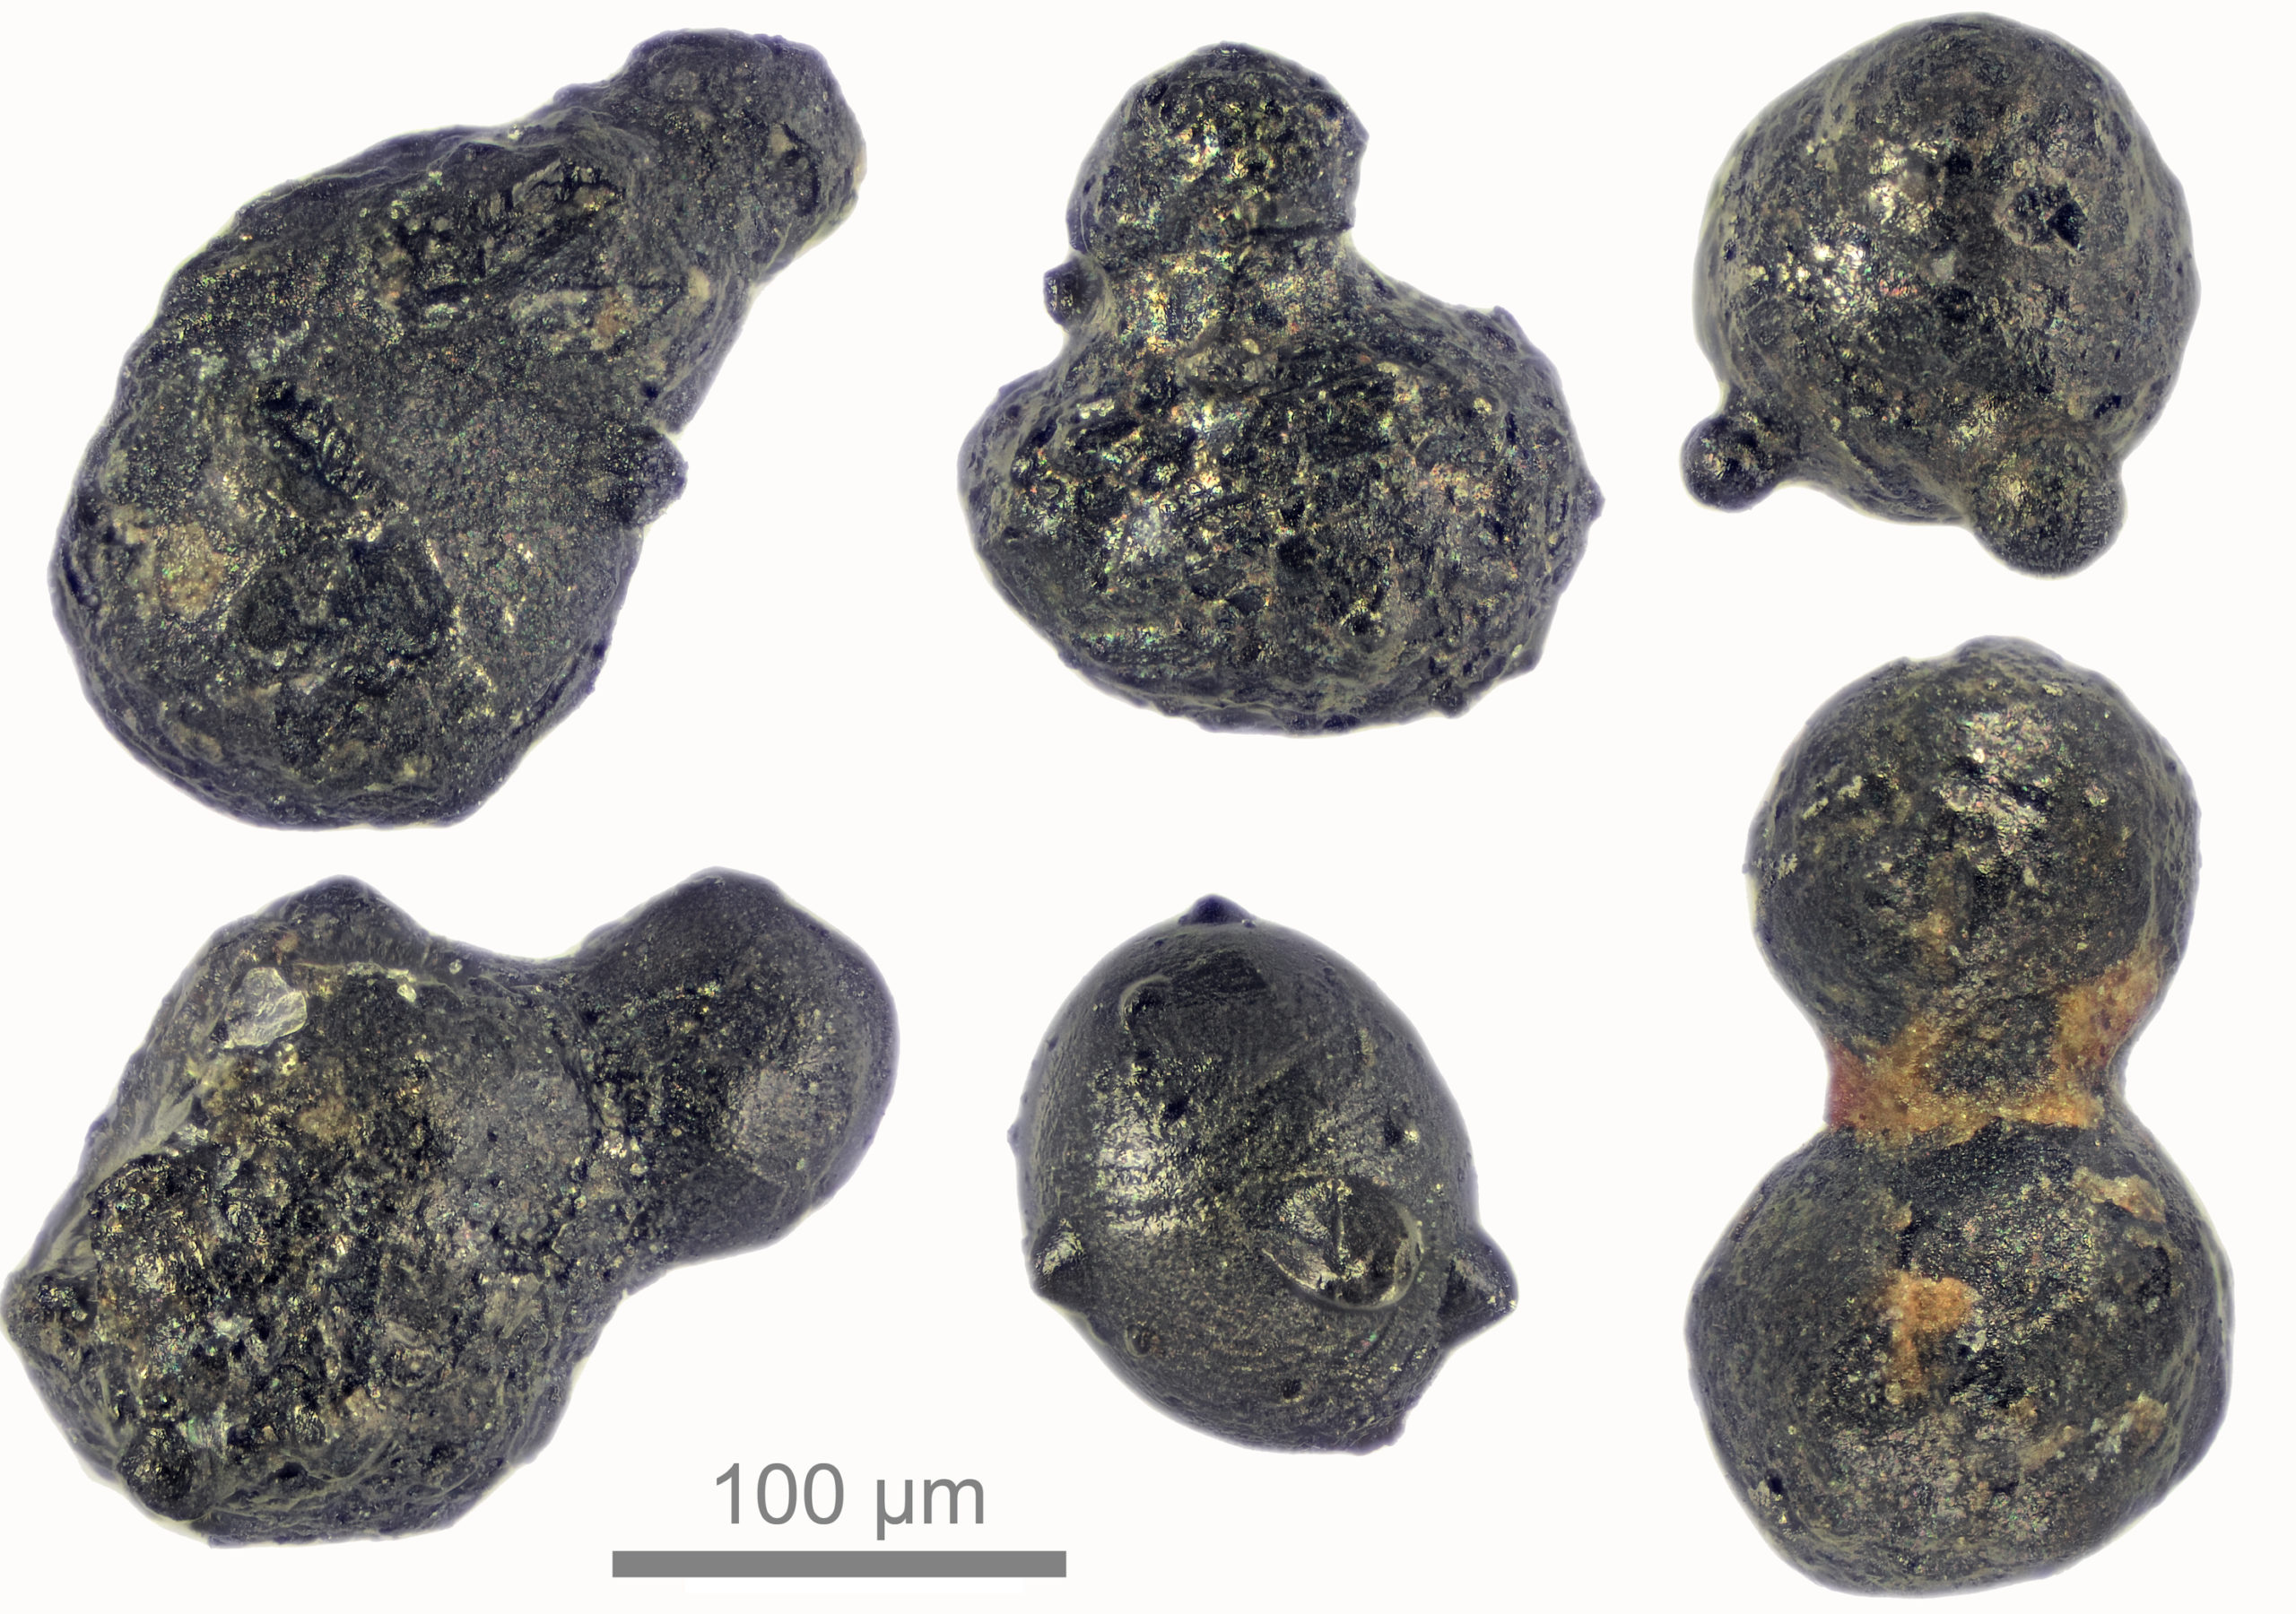 Meteor particles from 430,000 years ago